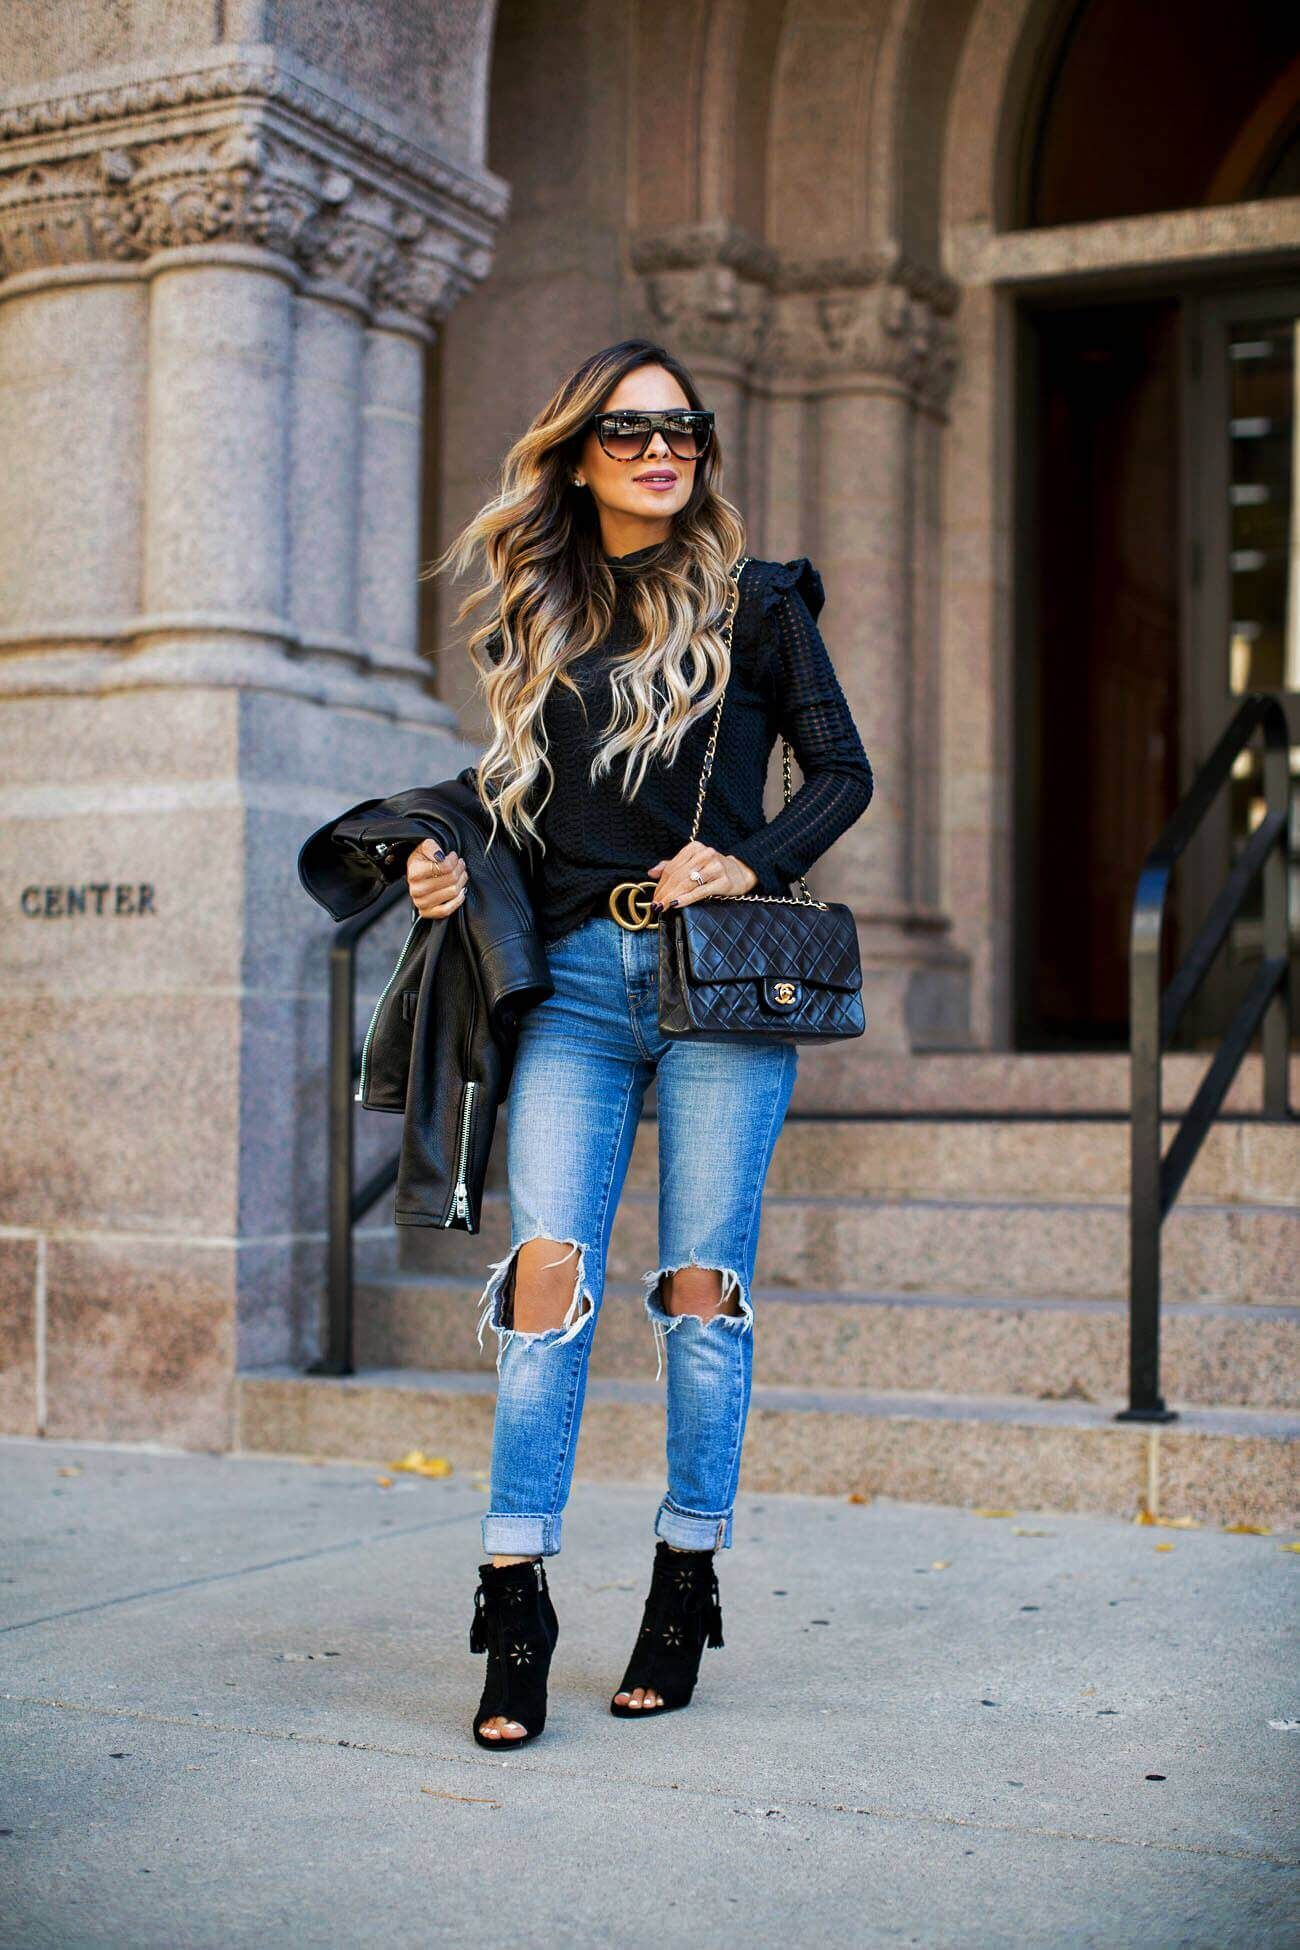 aa309bf207f4 fashion blogger mia mia mine wearing a fall outfit from nordstrom and  celine sunglasses